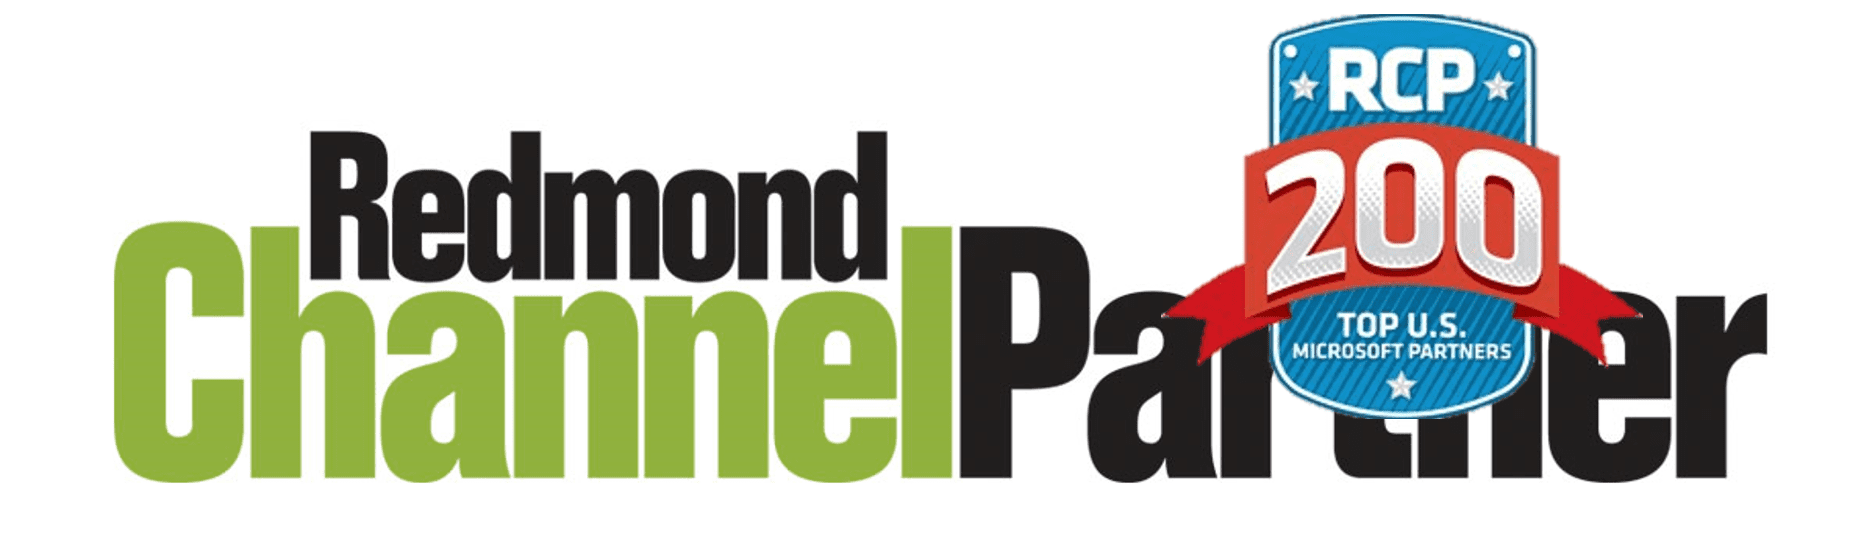 redmond channel Partner logo